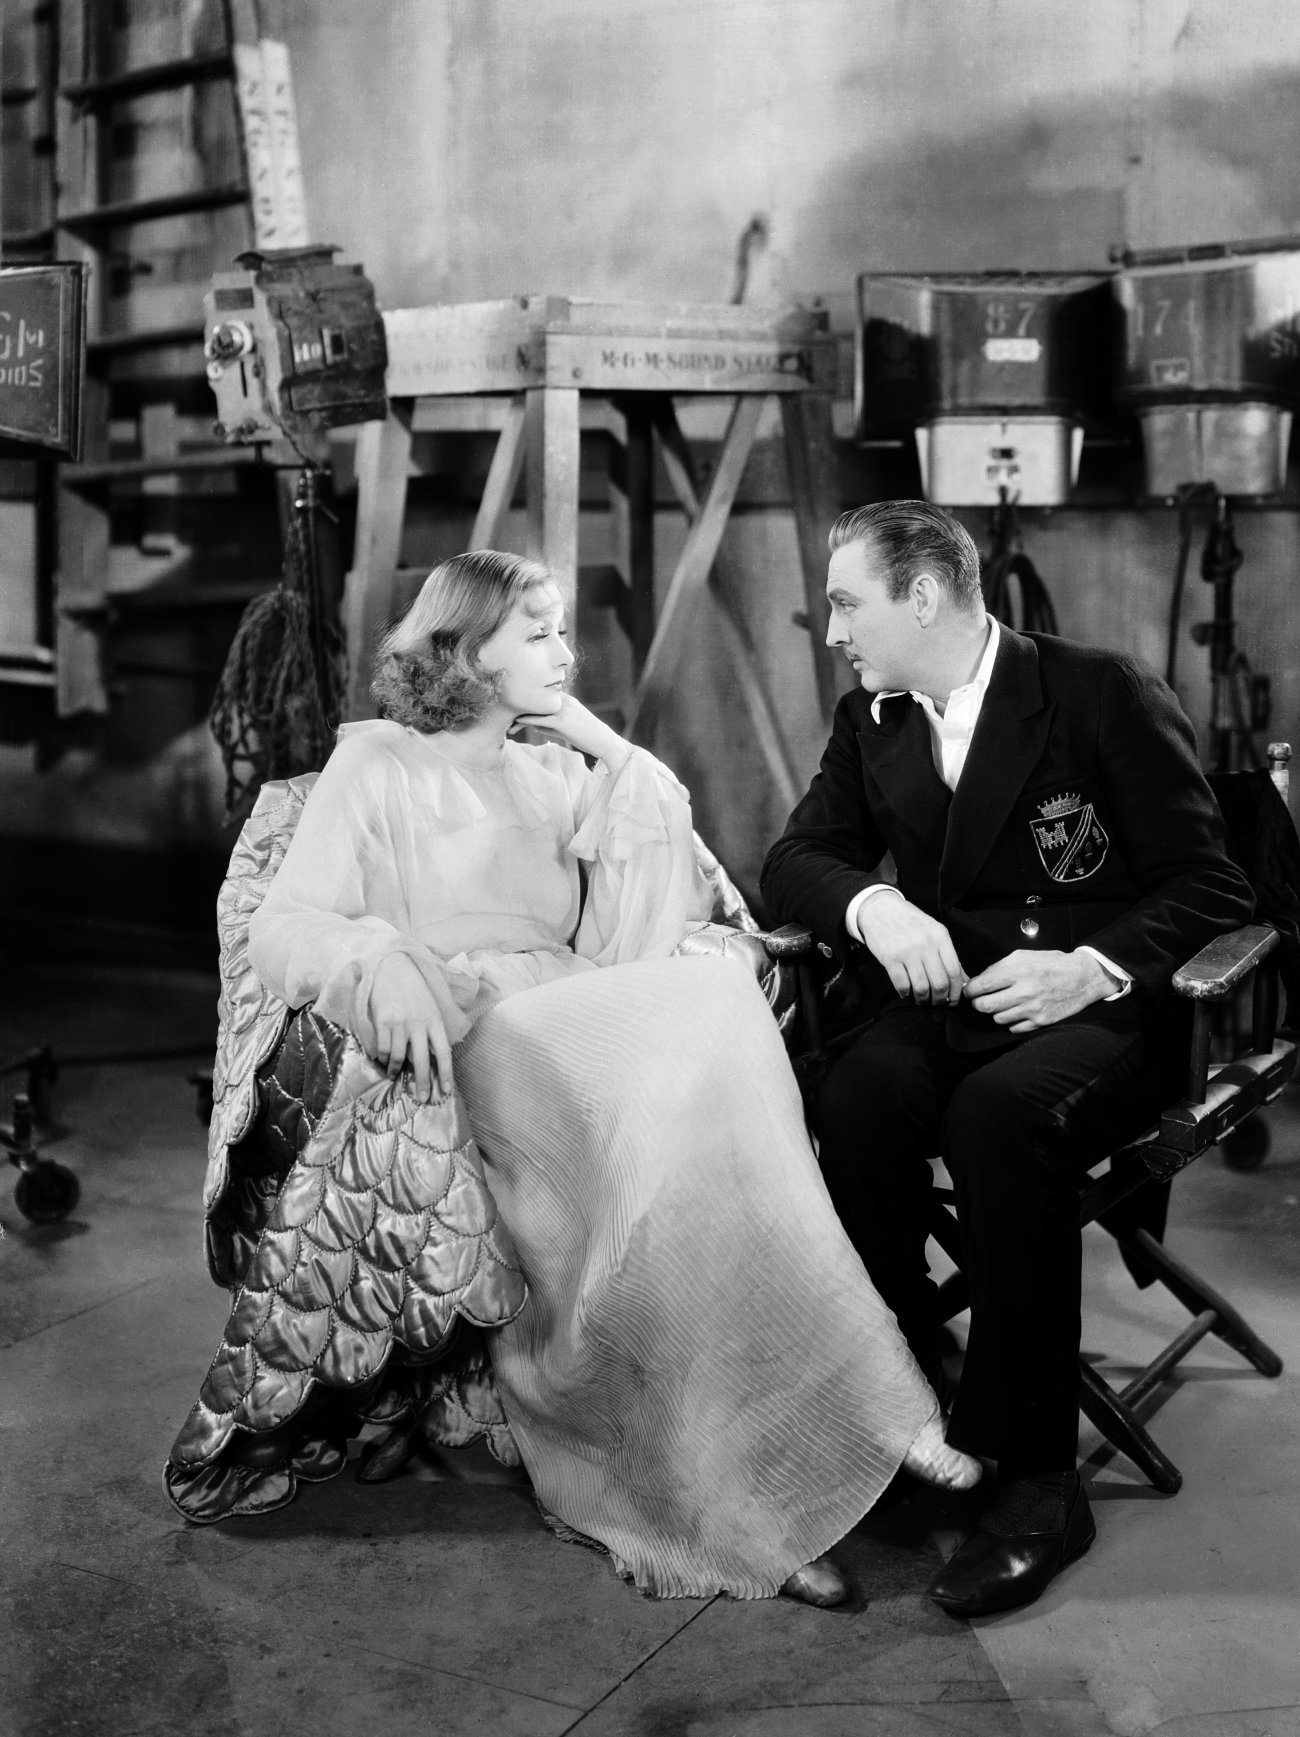 GARBO BEHIND THE SCENES OF GRAND HOTEL BEGUILING HOLLYWOOD